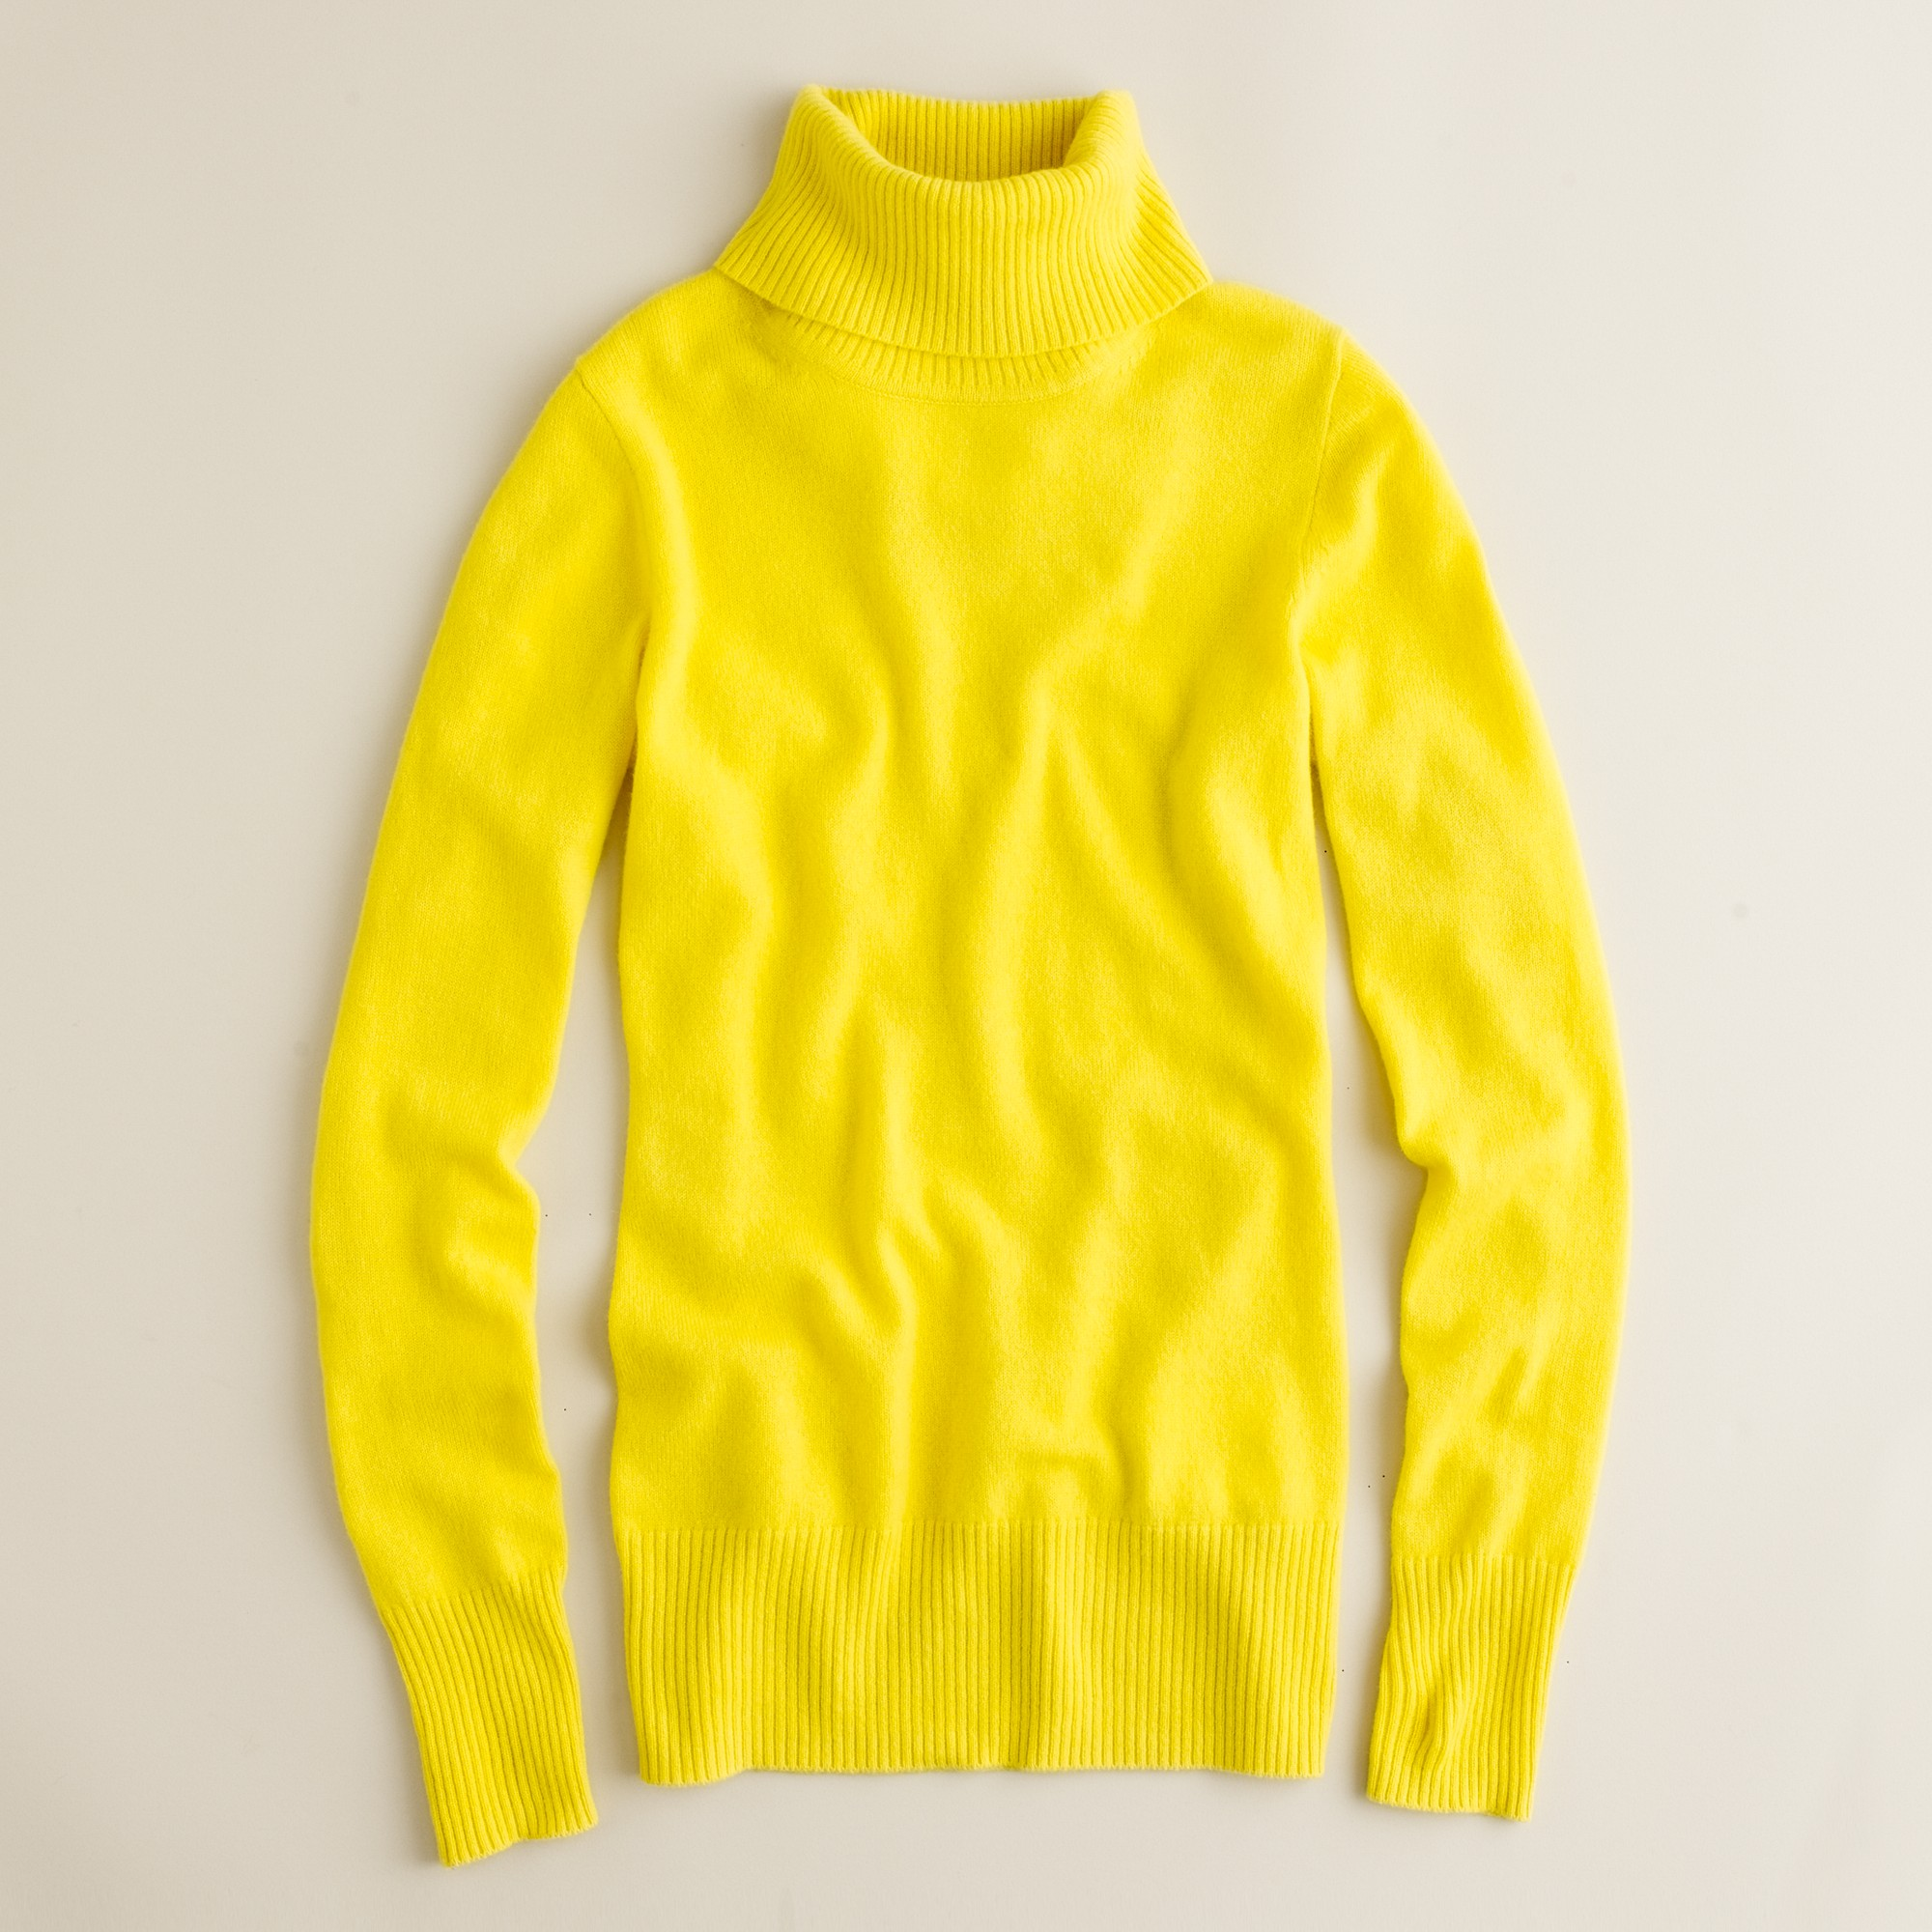 J.crew Cashmere Turtleneck Sweater in Yellow | Lyst